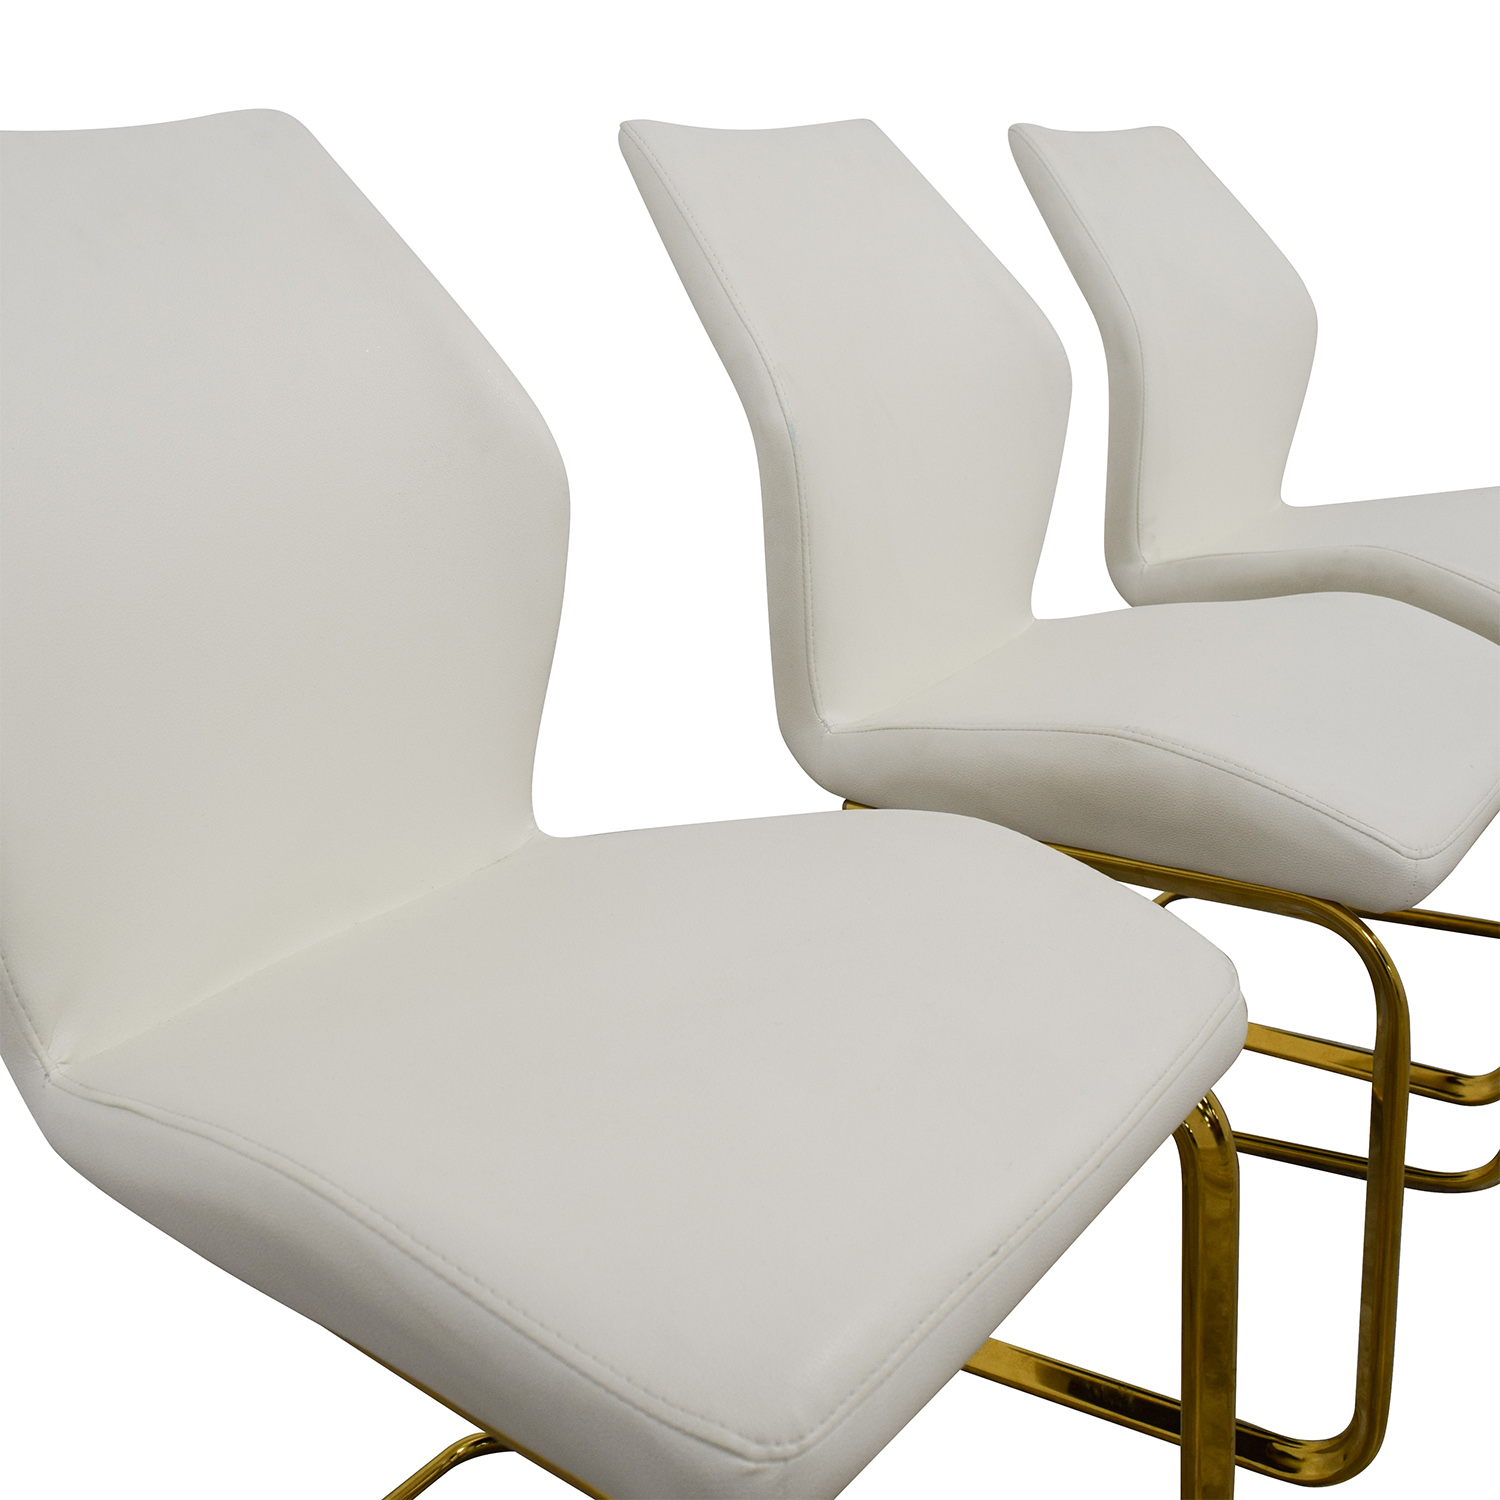 89 Off Nicole White Leather Dining Chairs Chairs